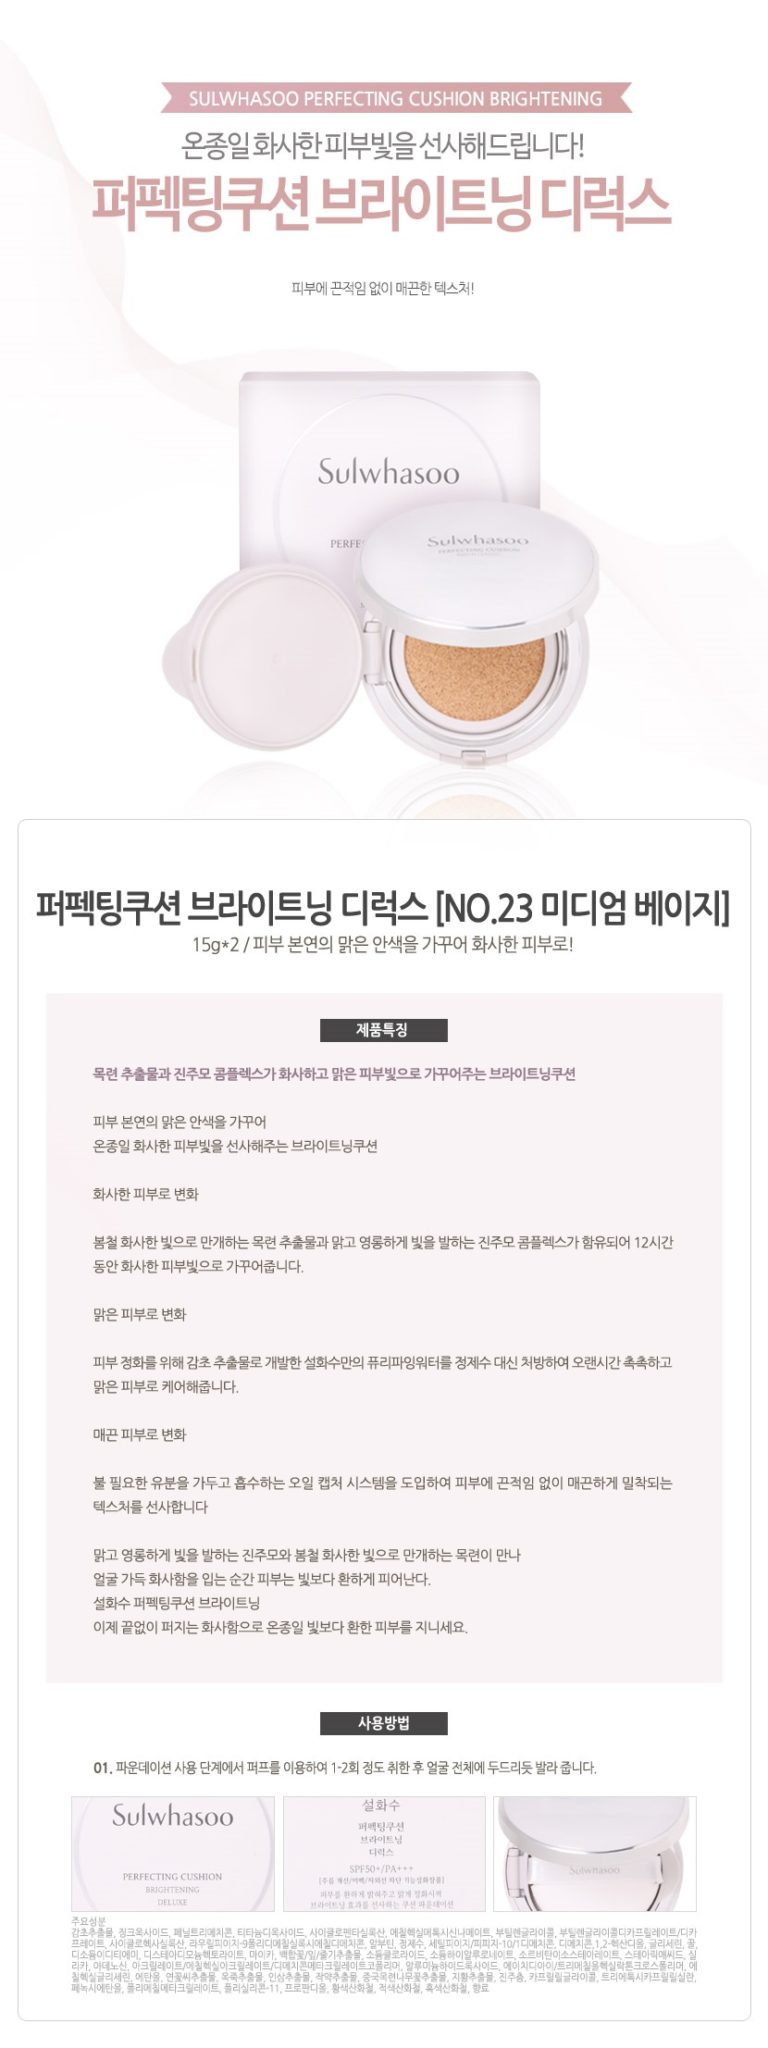 Sulwhasoo Perfecting Cushion Brightening SPF 50 price Malaysia singapore thailand vietnam australia brunei philippine1